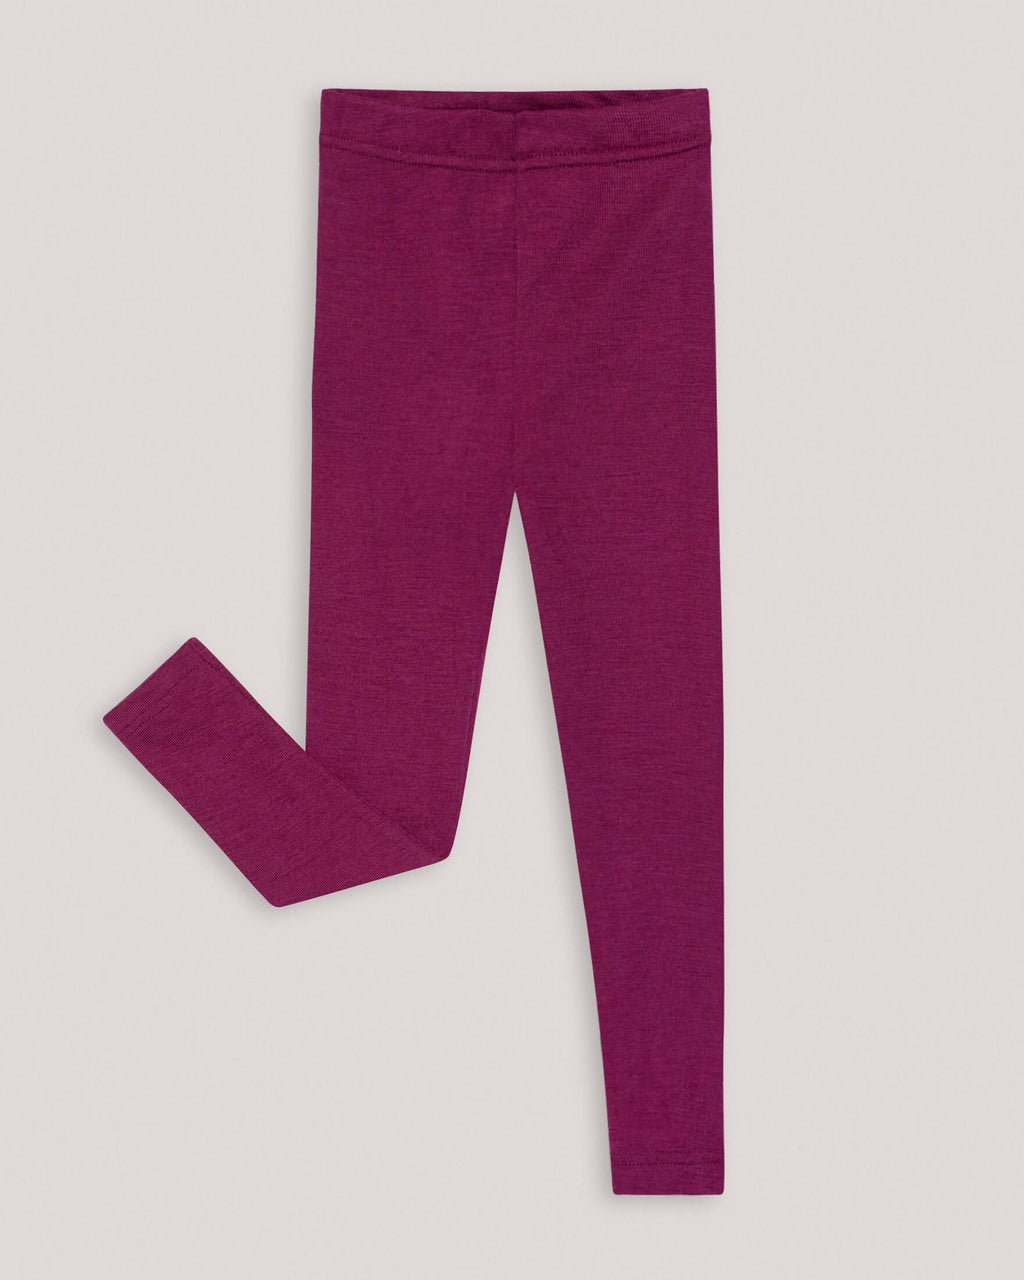 variant_3 | EN Purple Leggings Kids Multicolor ENGEL | DE Lila Leggings Kinder Bunt ENGEL